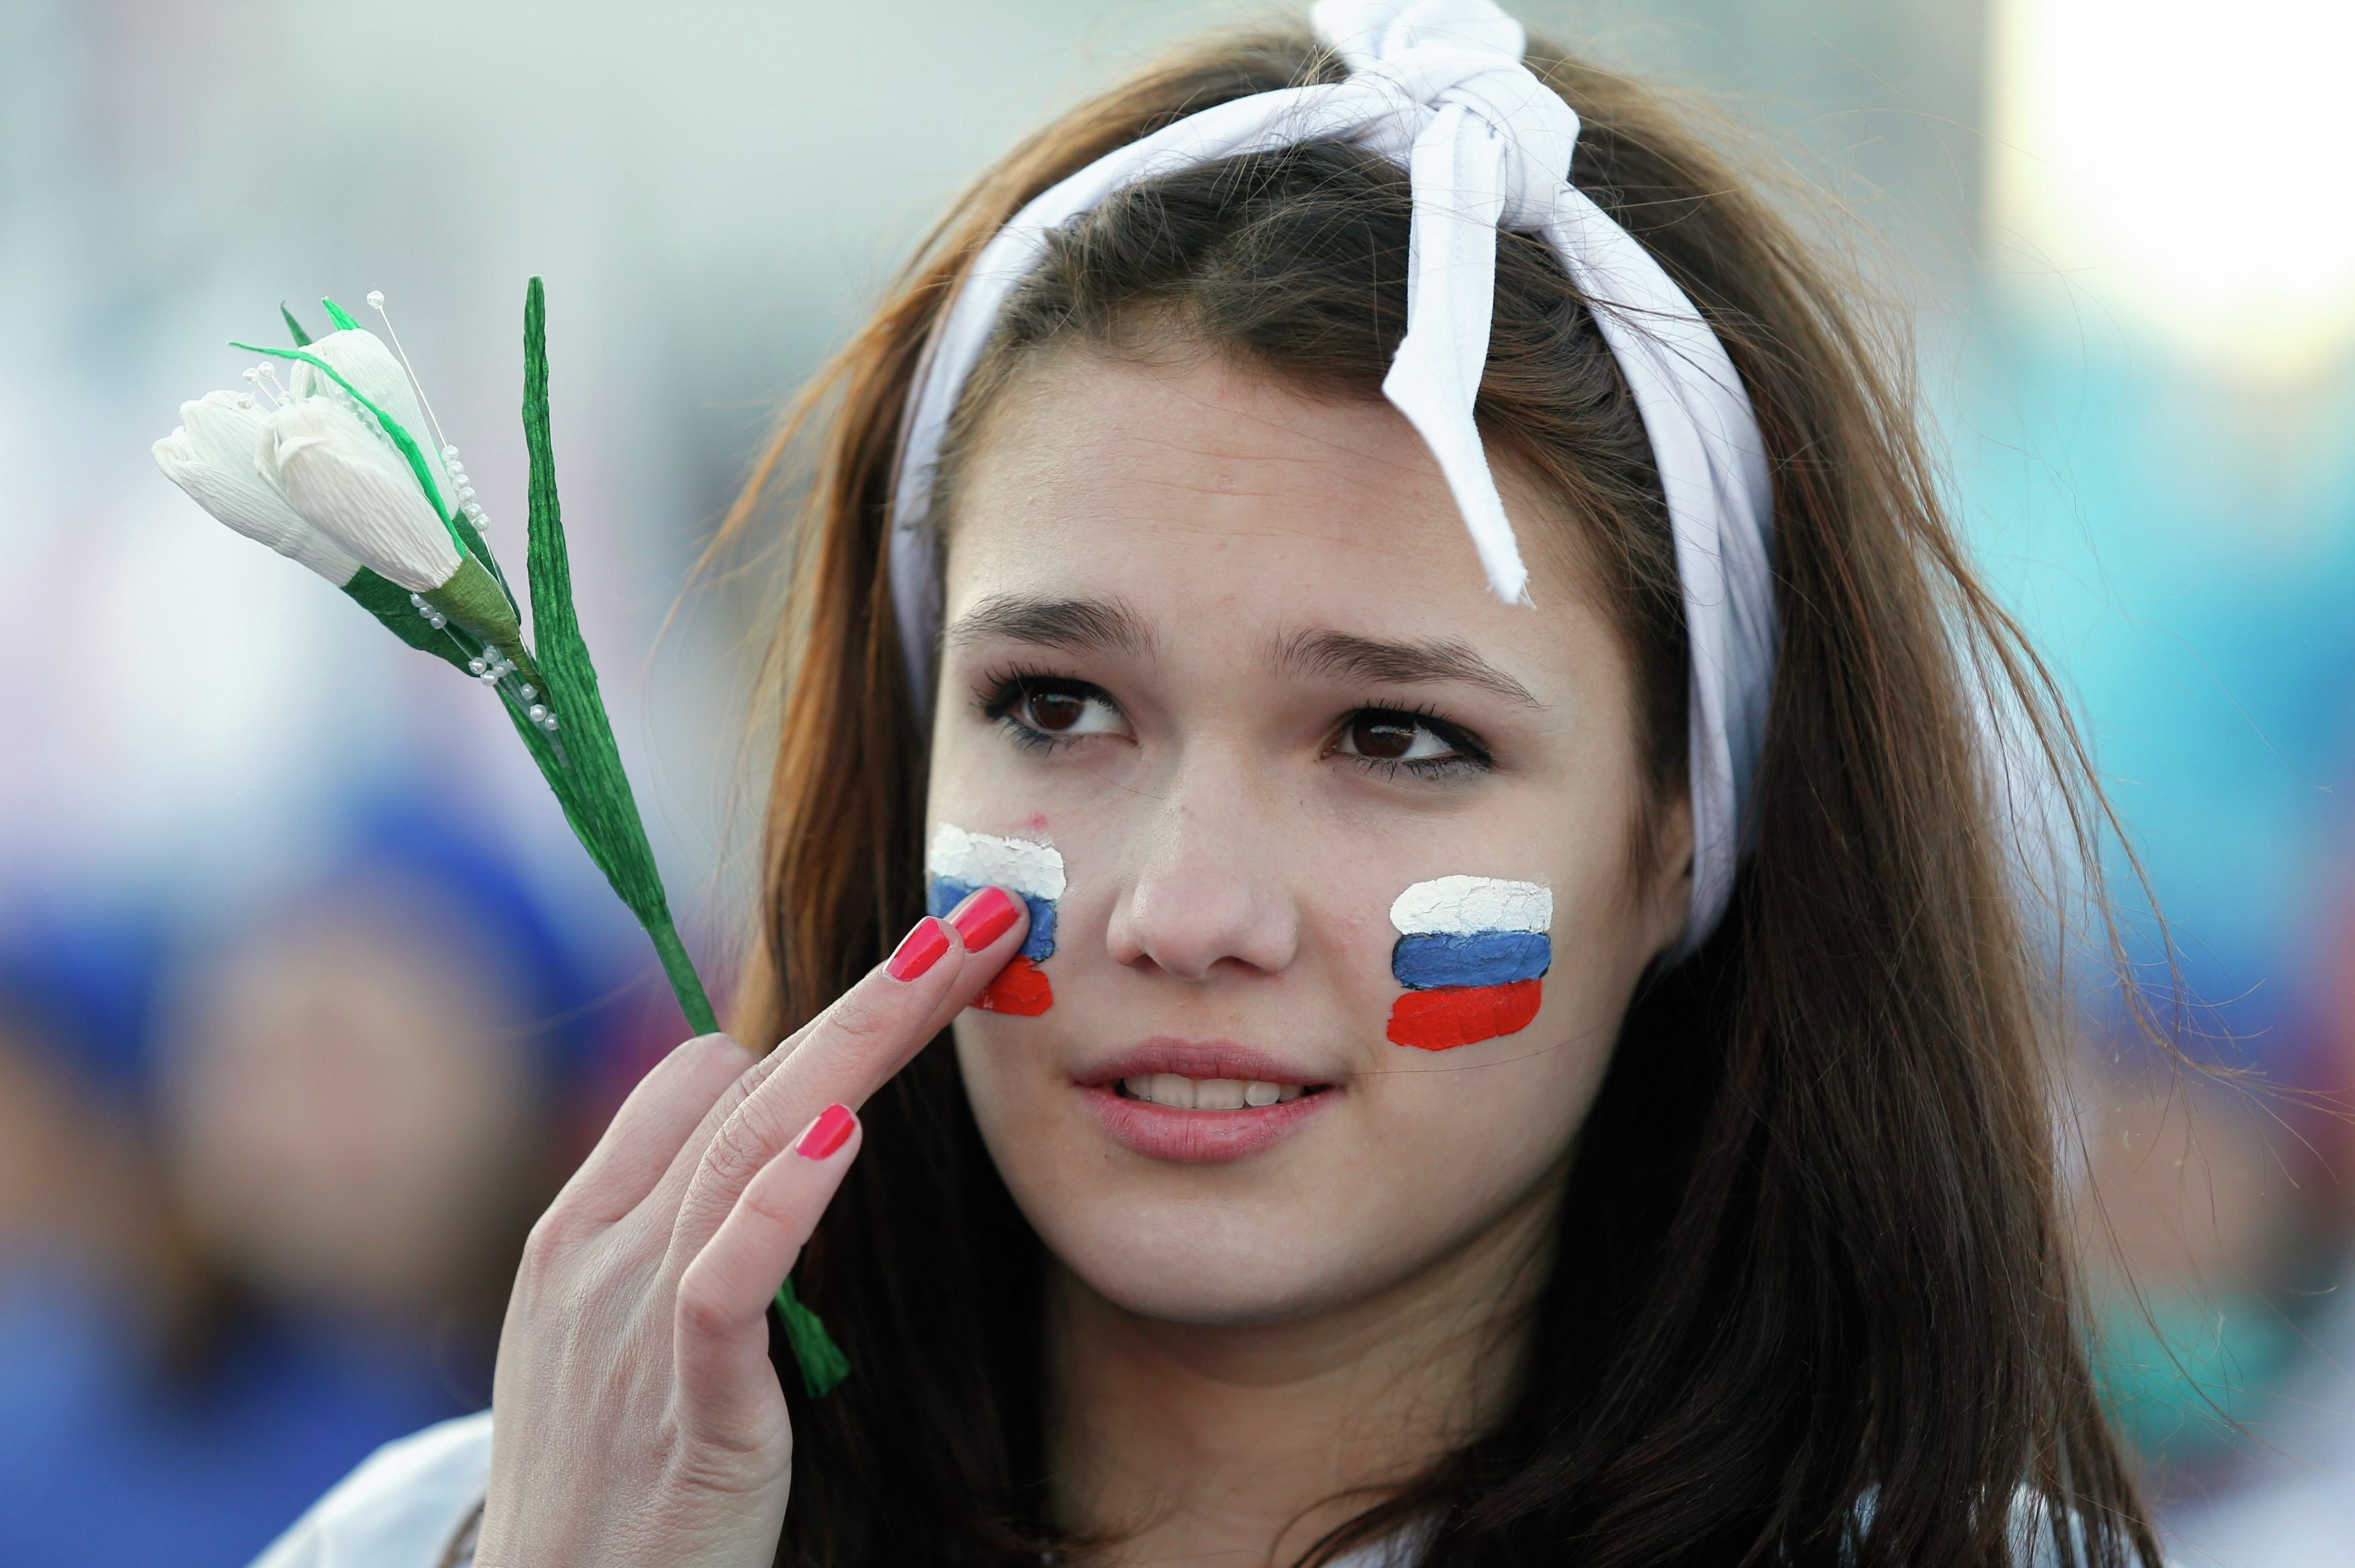 A girl with Russian national flags painted on her cheeks takes part in celebrations marking the one-year anniversary of Crimea voting to leave Ukraine, in central Simferopol March 16, 2015.